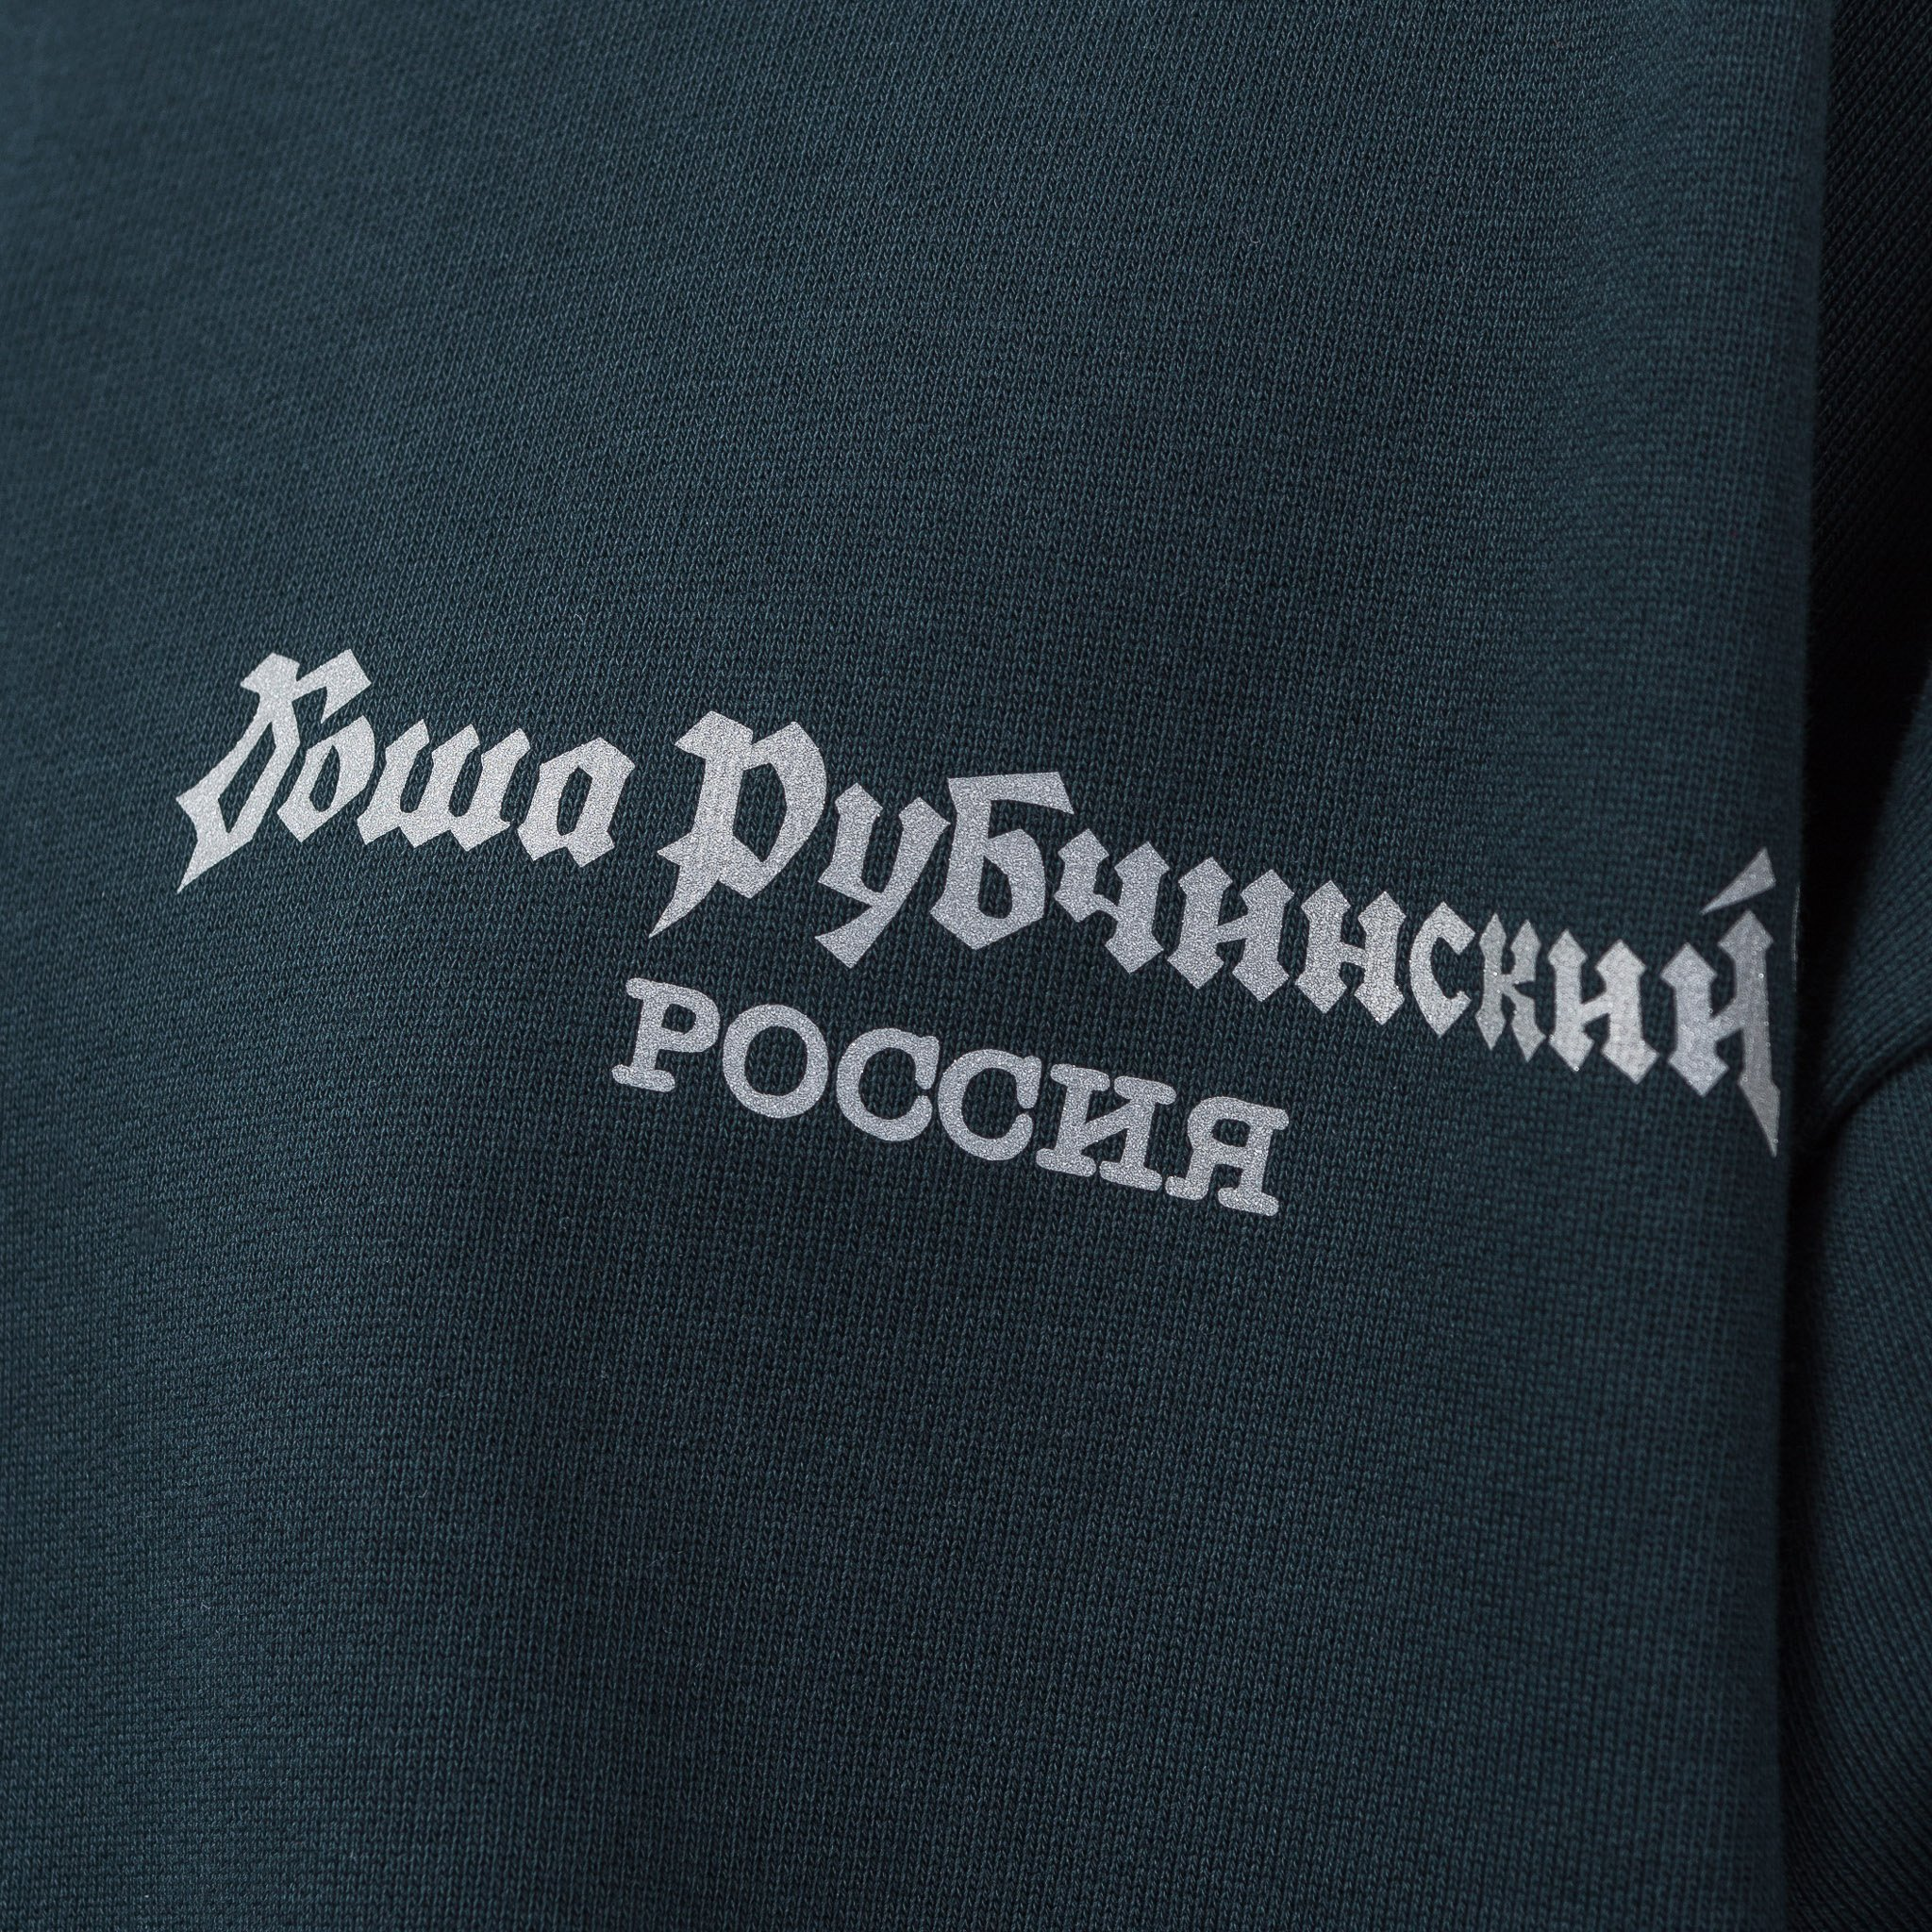 ★送関込*Gosha Rubchinskiy* Small Logo Sweatshirt in Green★